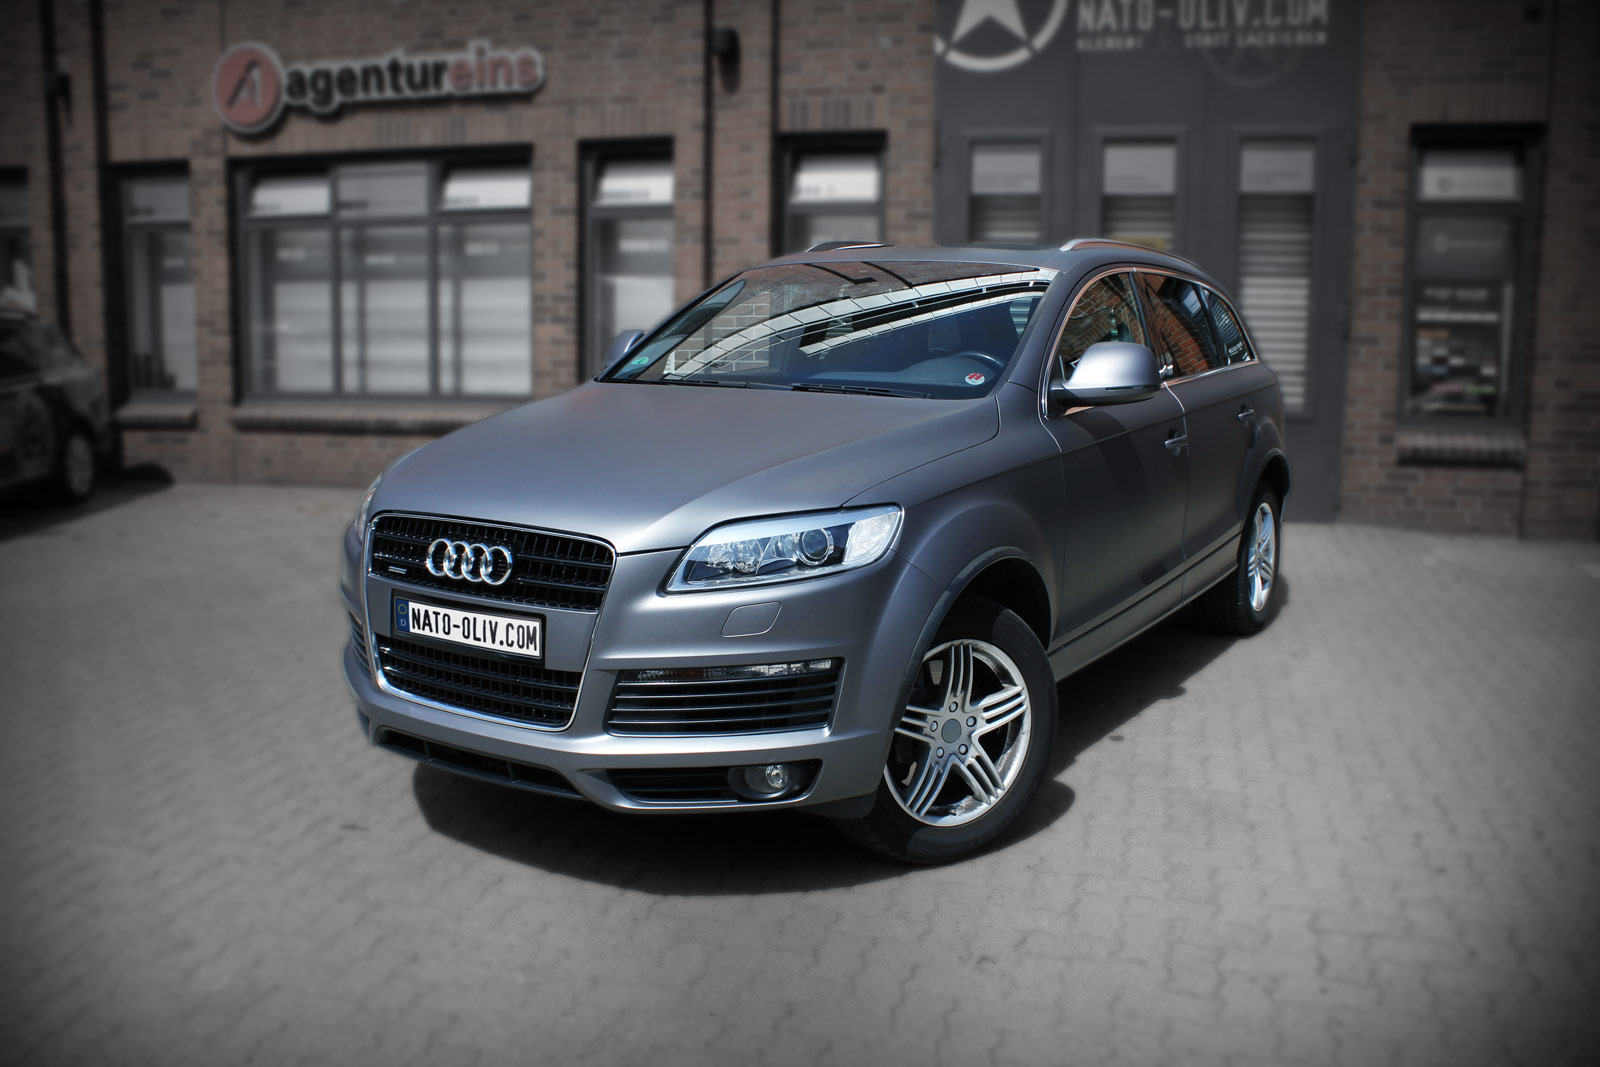 Audi Q7 foliert mit anthrazit matt metallic Folie.